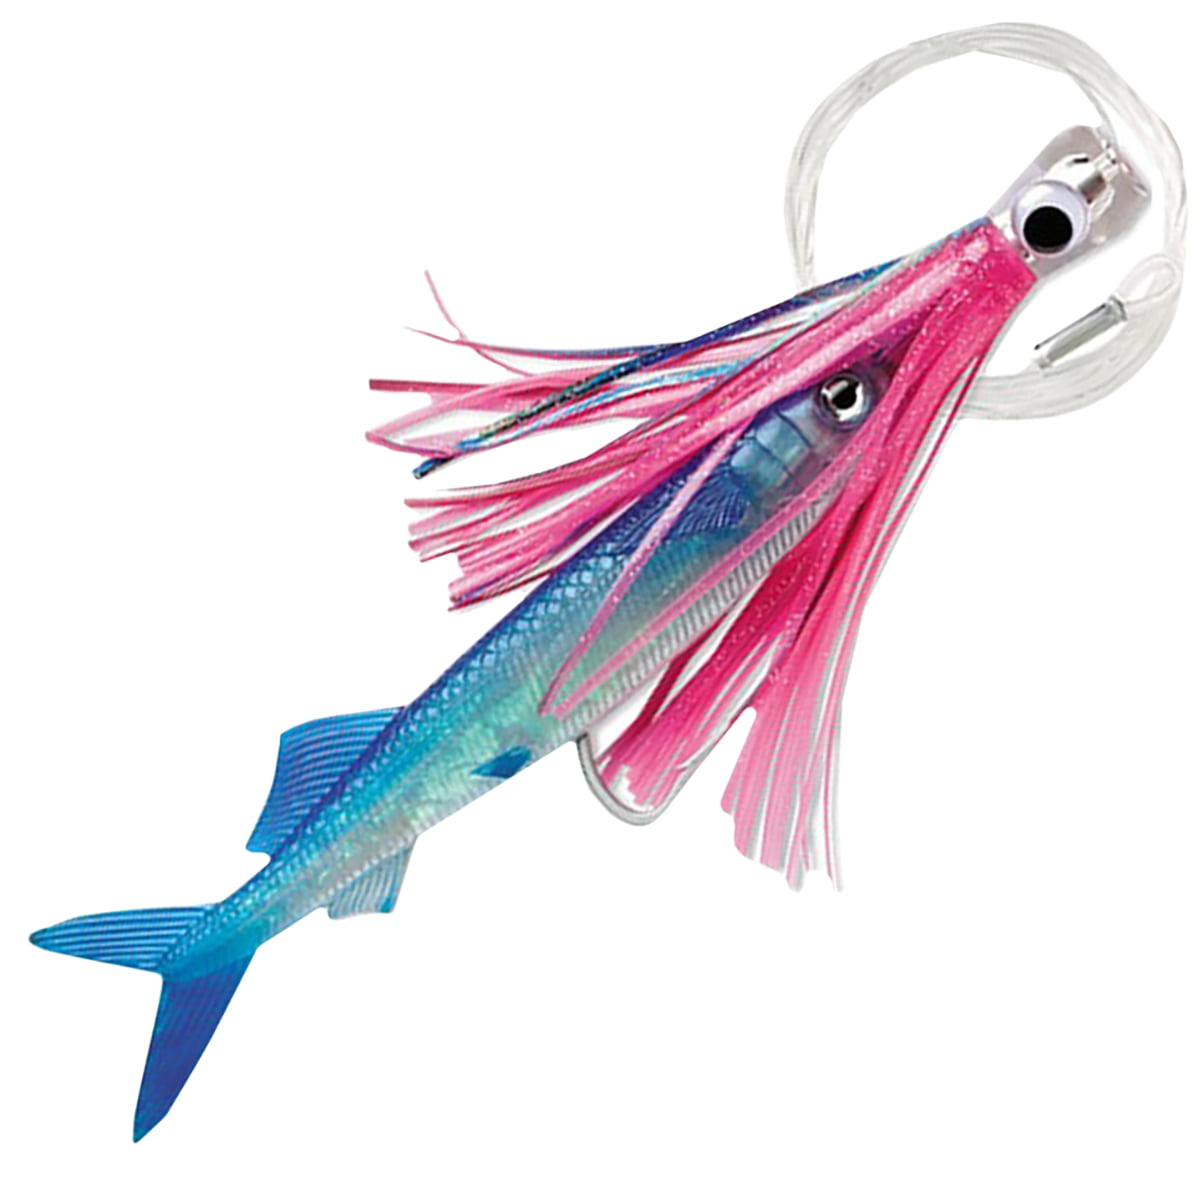 "Williamson Live Ballyhoo Combo Rig Fishing Lure 10.5"" by Williamson Lures"